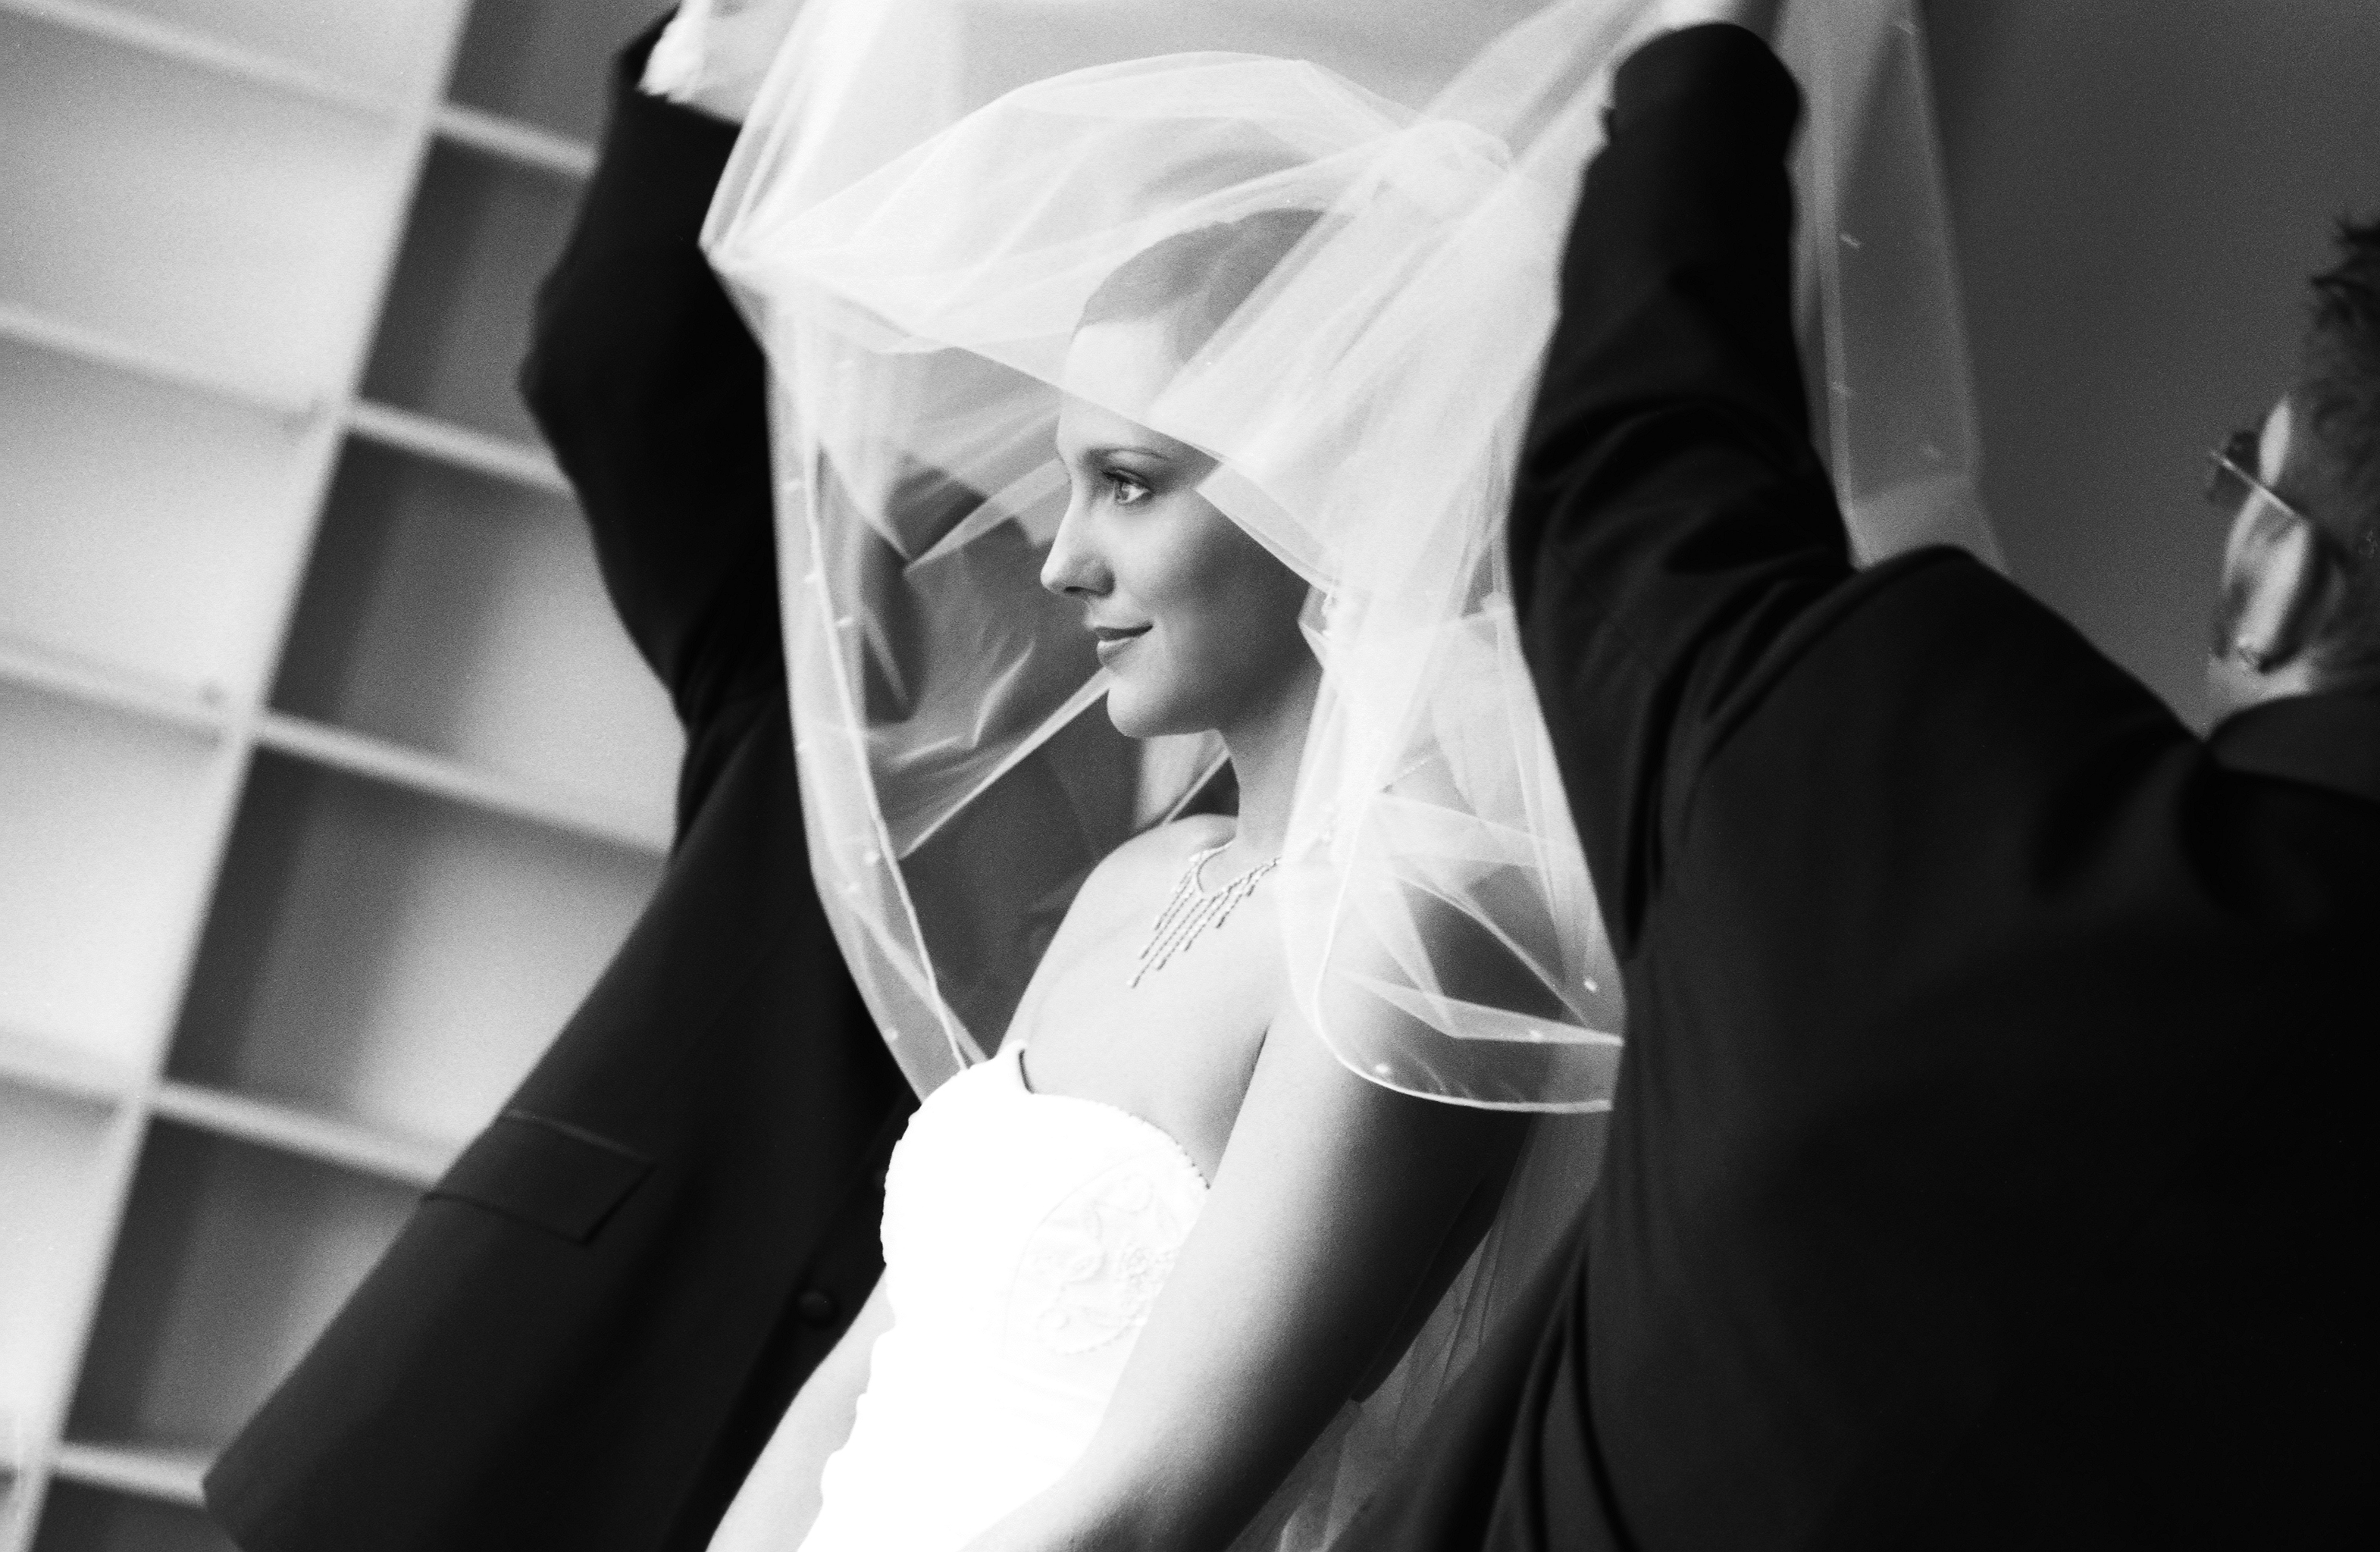 Brides veil being lifted up over her head